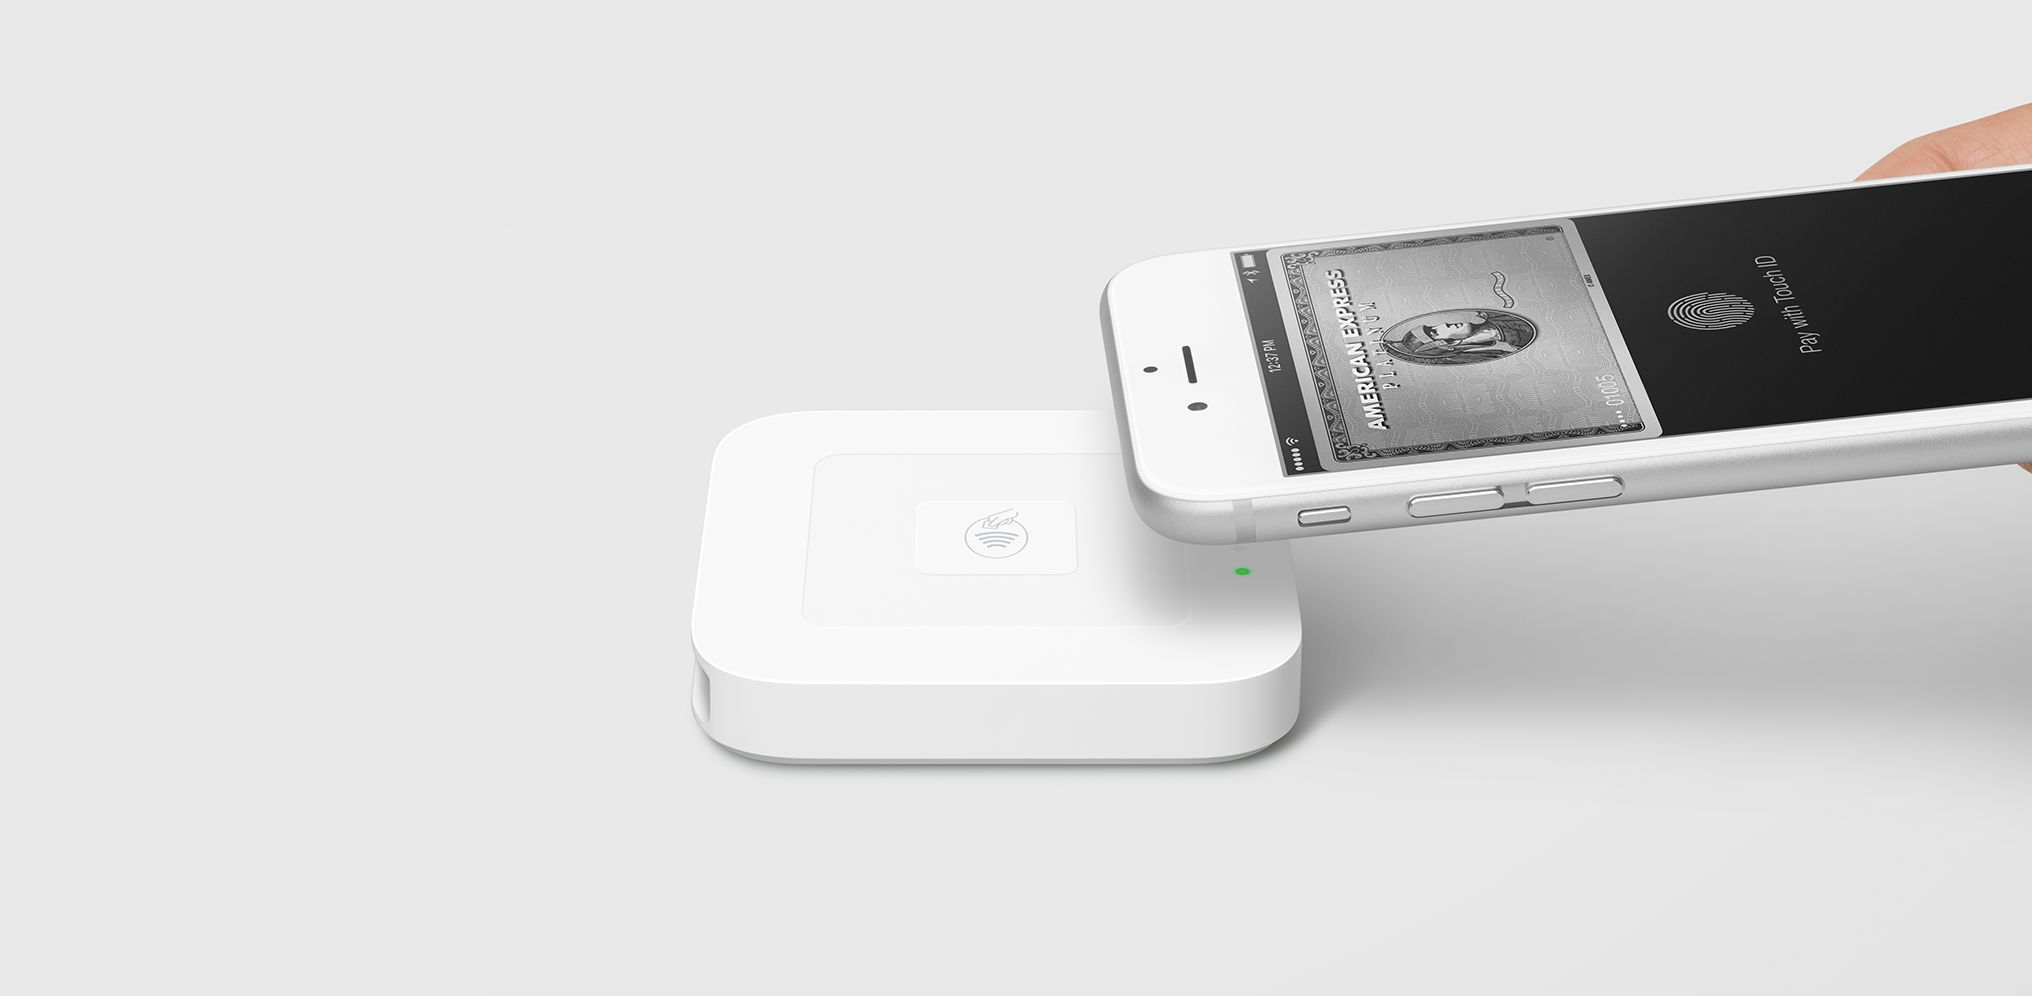 Square Reader For Contactless And Chip Square Shop